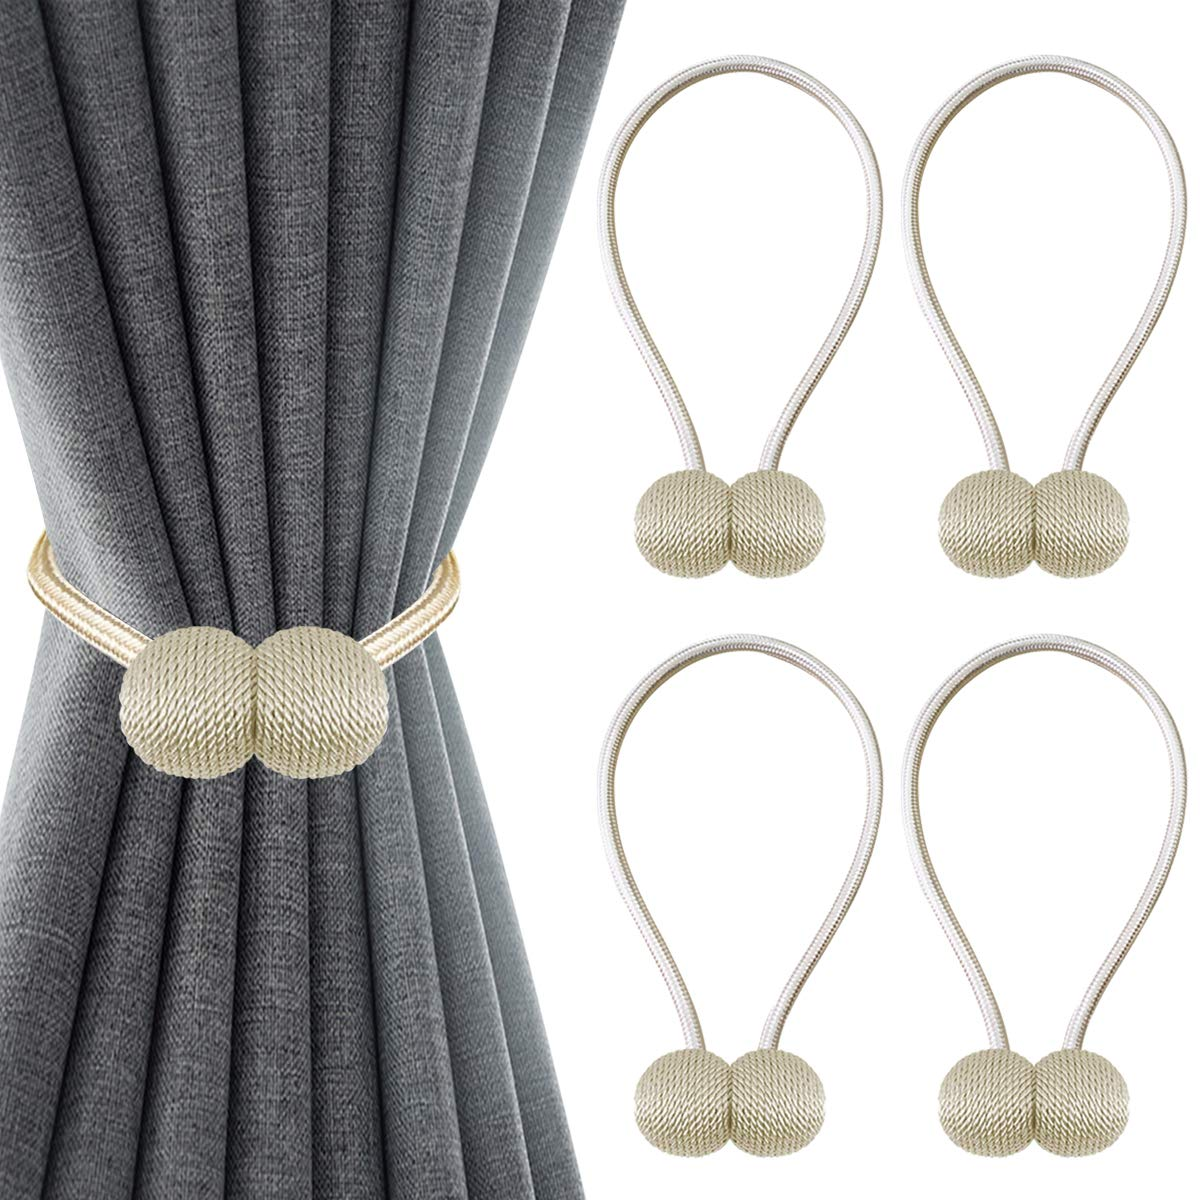 Topspeeder 4 Pack Magnetic Curtain Tiebacks,The Most Convenient Drape Window Tie Backs Decorative Weave Rope Clips Holdback Holder Hooks for Home Office Window Drapries,16 Inch Long with Beige Color